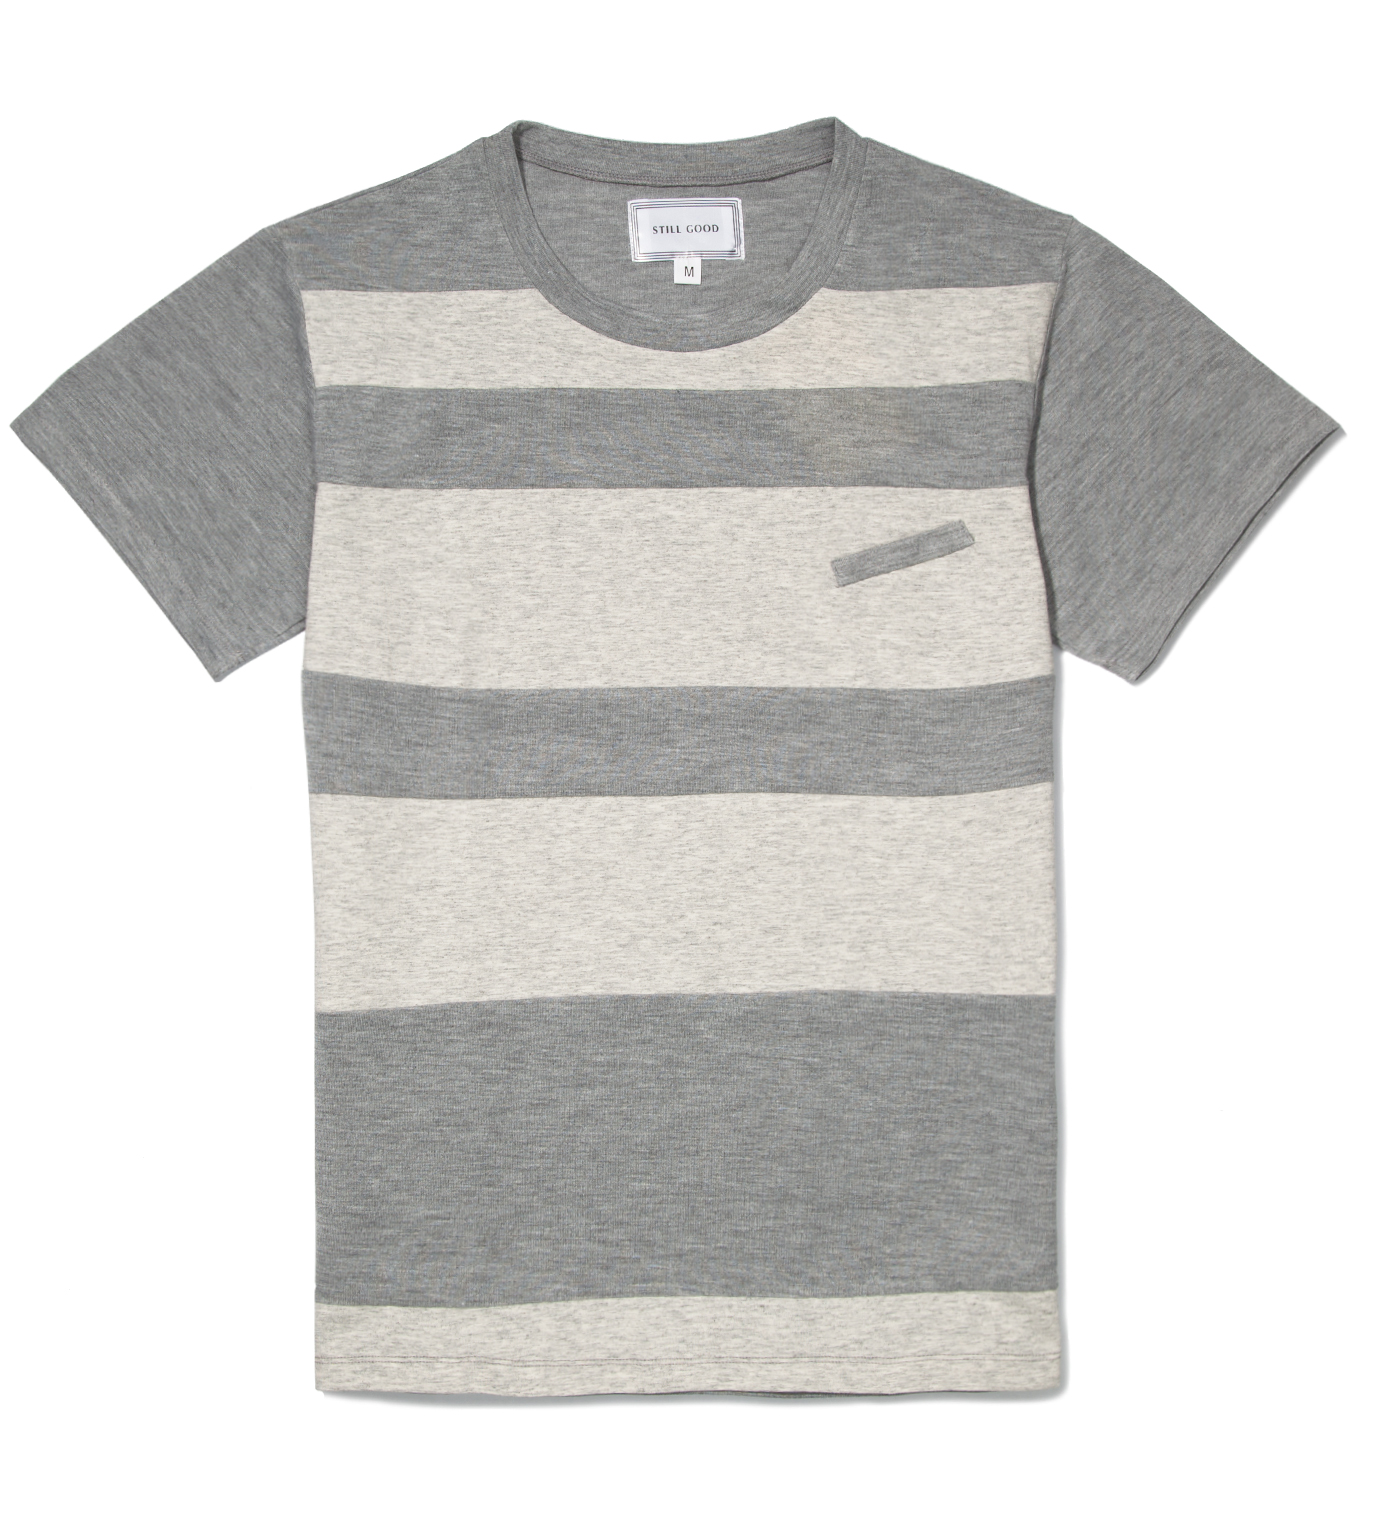 Still Good Grey Stability T-Shirt